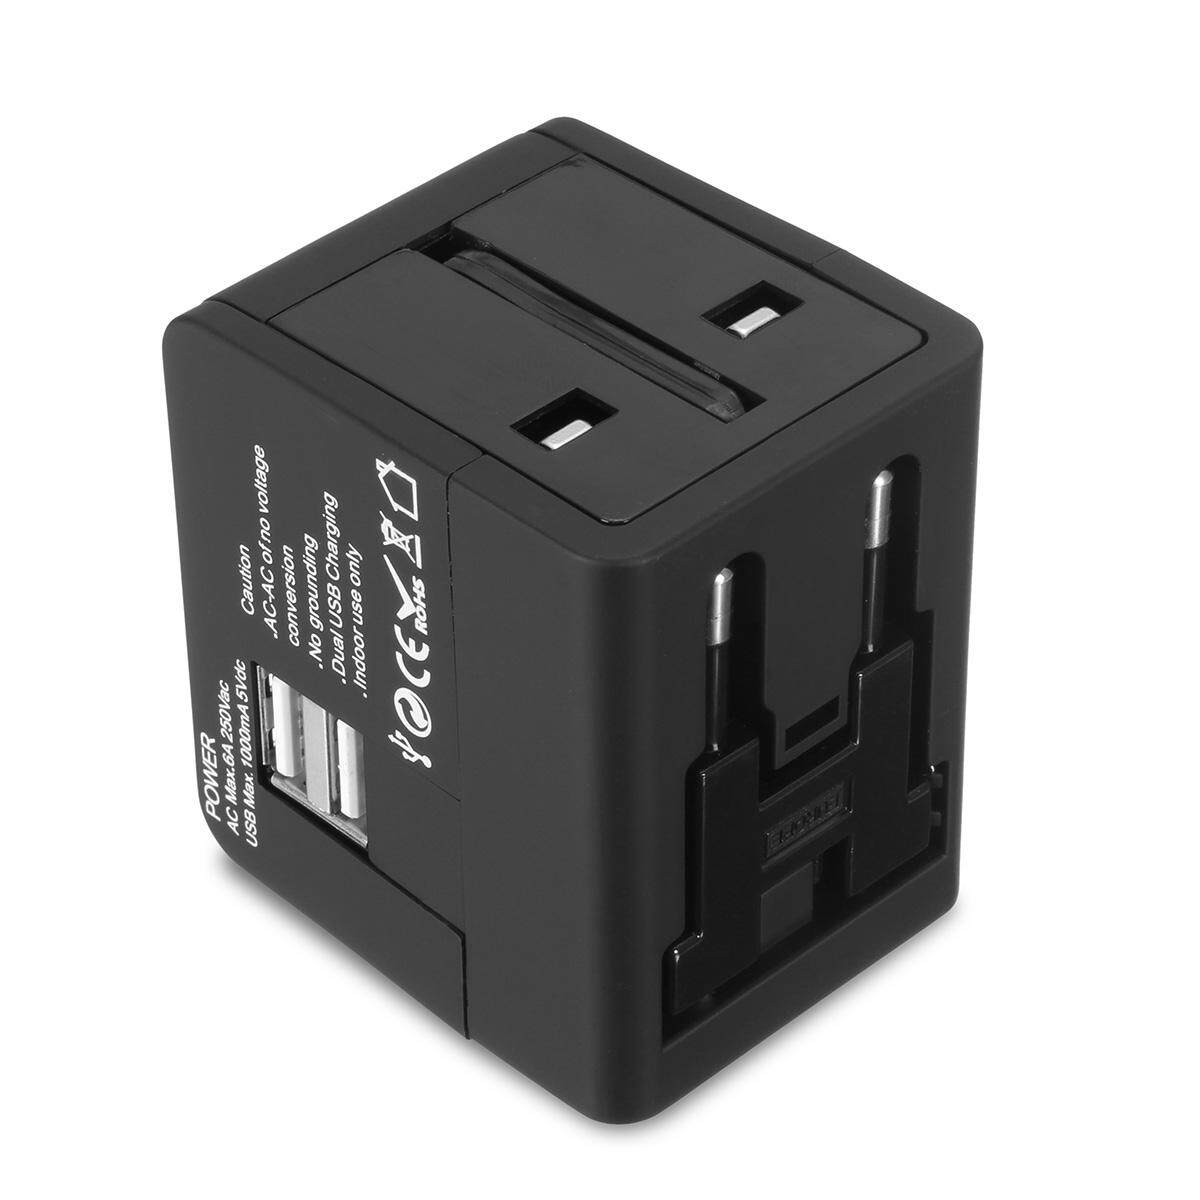 Us Uk Au Eu Worldwide Travel Charger Power Adapter Converter Wall Plug Home 2usb By Freebang.